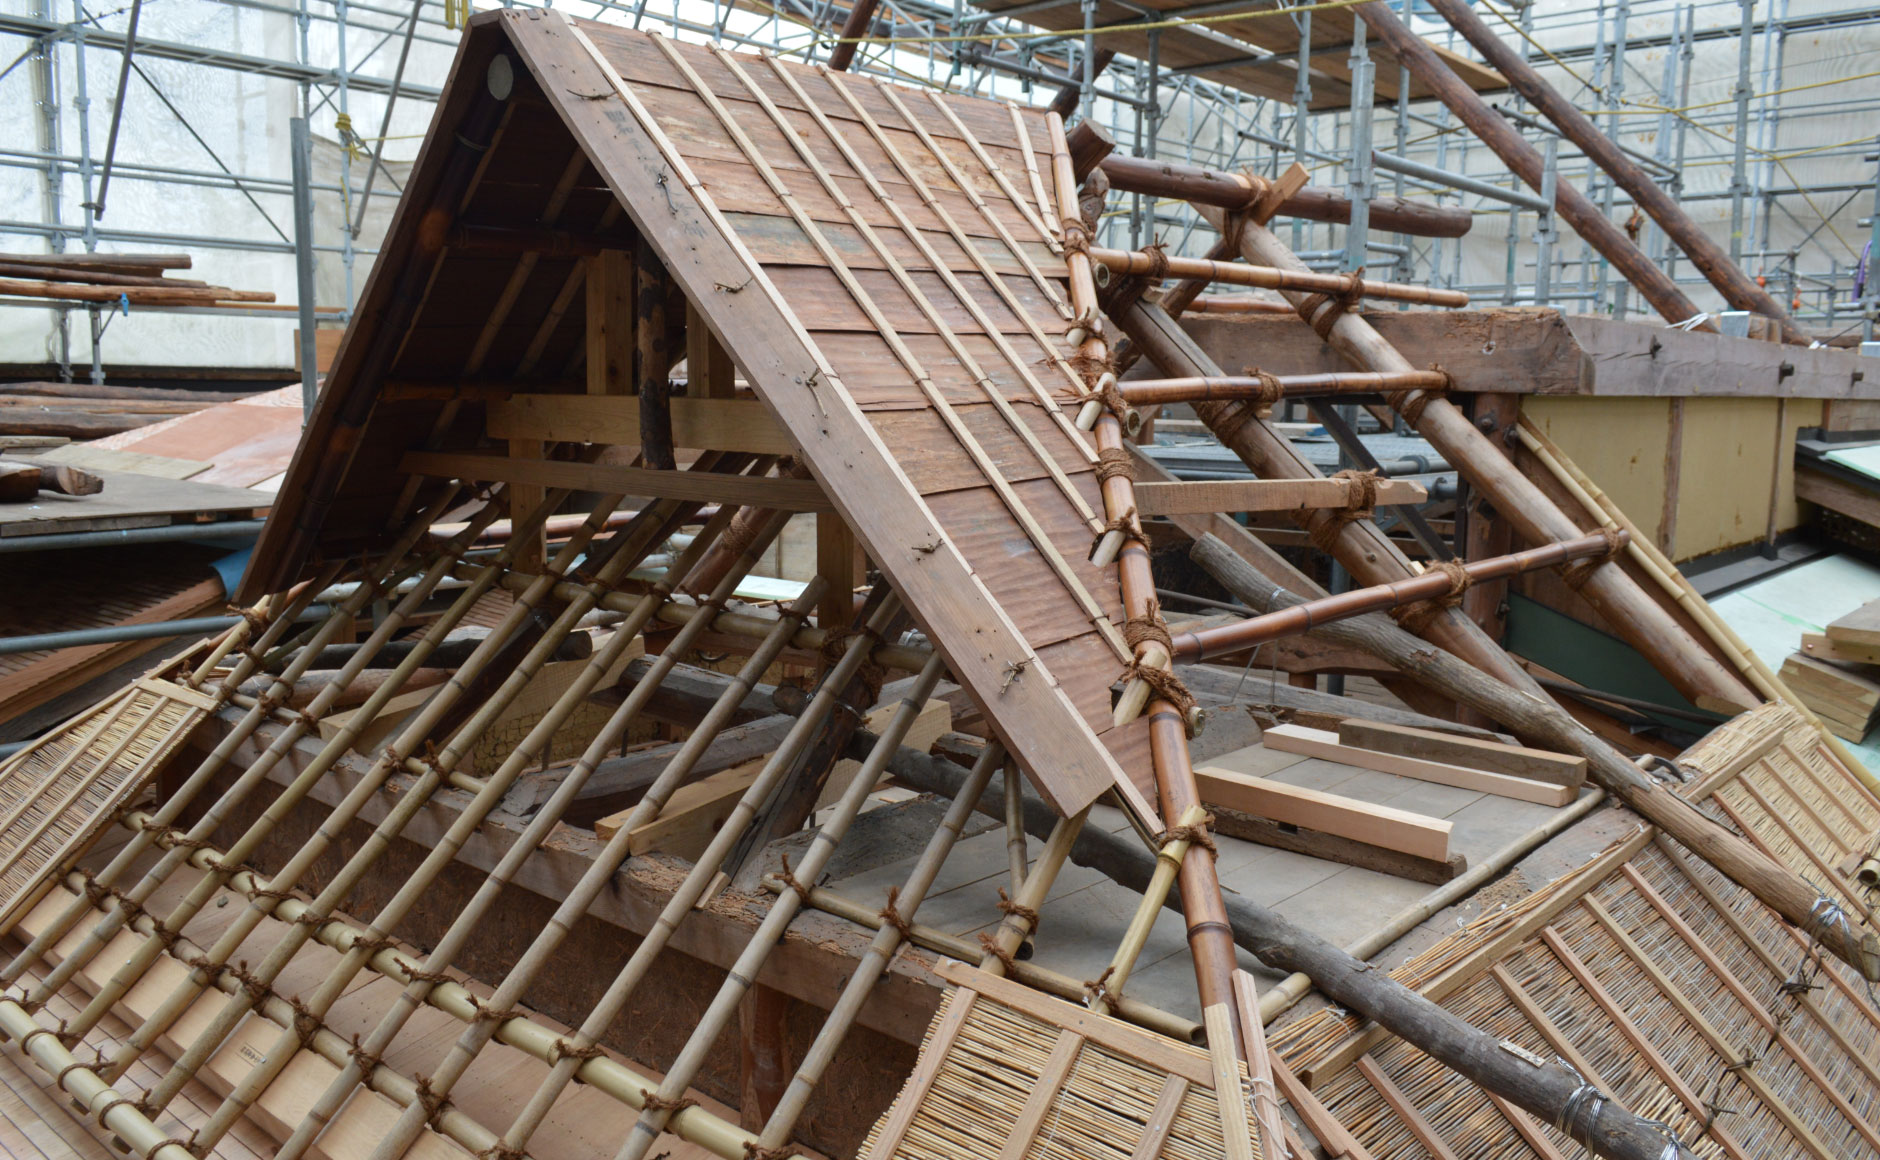 Repair work on the roof of Kanden-an